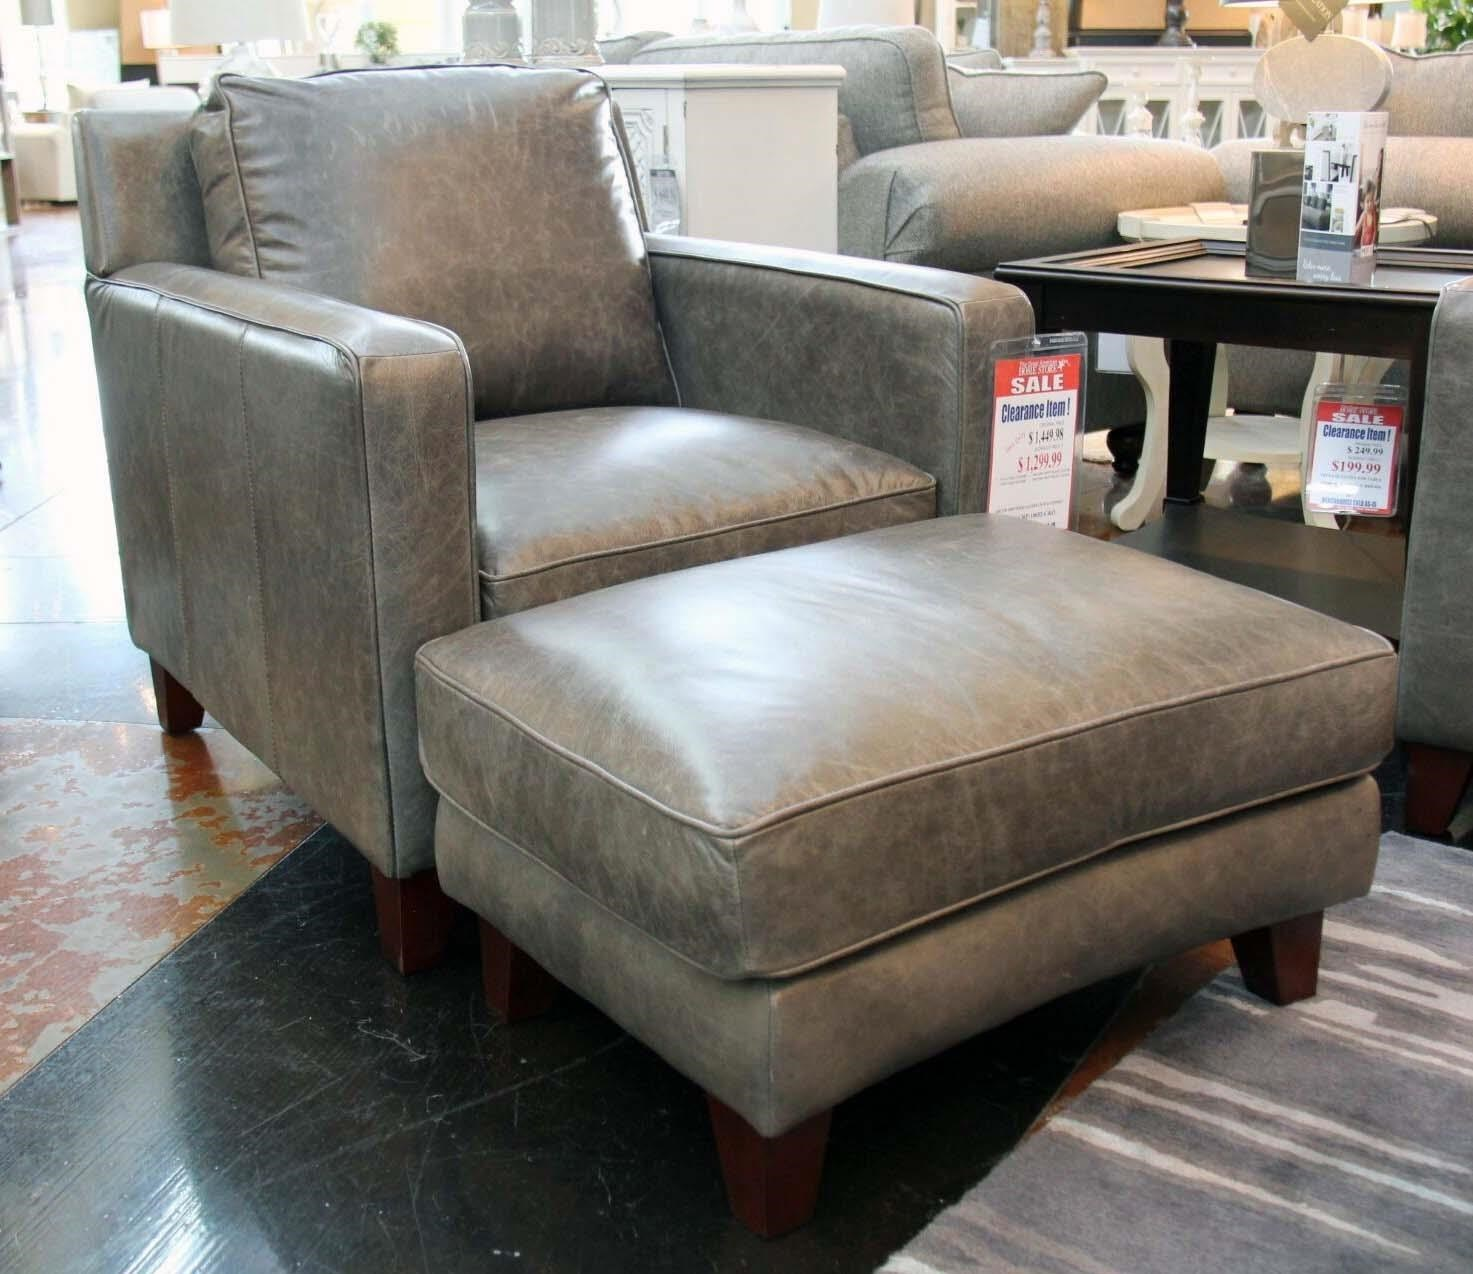 Leather Chairs And Ottomans Sale Abilene Contemporary Leather Chair Ottoman By Futura Leather At Great American Home Store